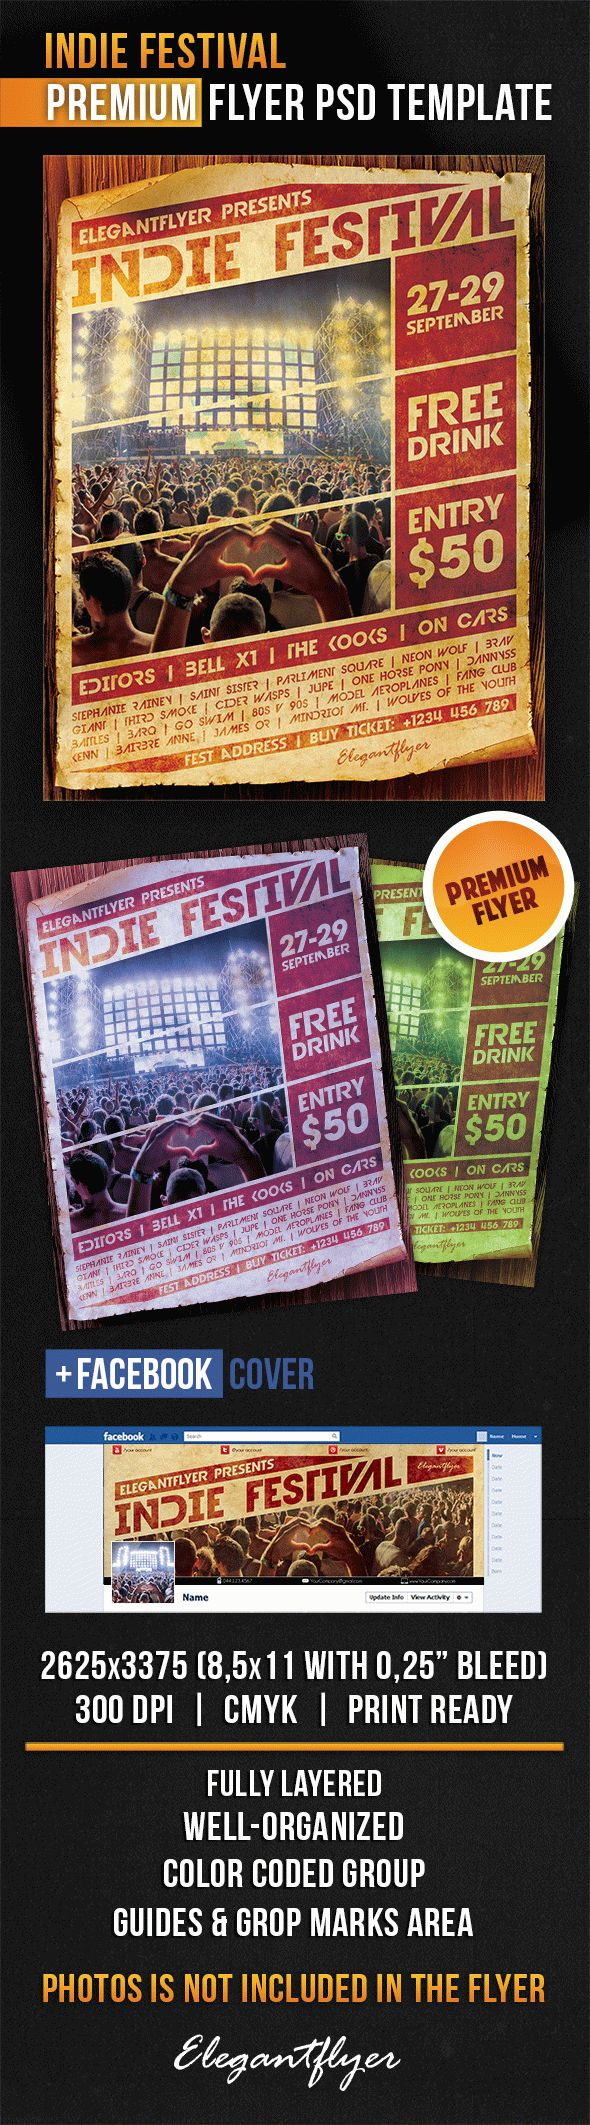 Indie Festival – Flyer PSD Template + Facebook Cover